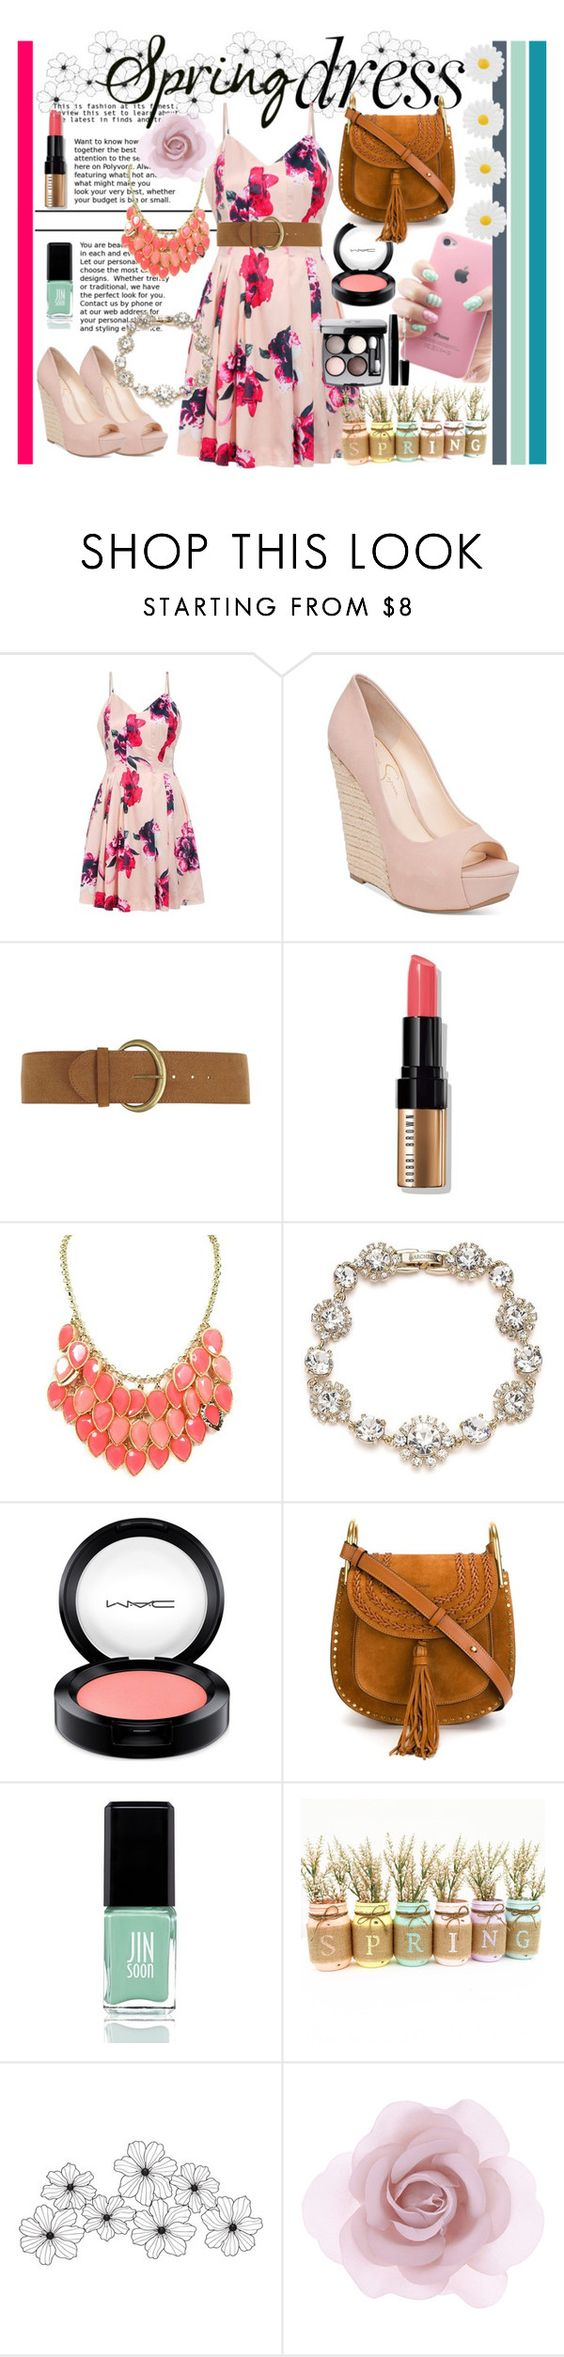 """""""Spring dress"""" by annamcevoy-i ❤ liked on Polyvore featuring Jessica Simpson, Dorothy Perkins, Bobbi Brown Cosmetics, Marchesa, MAC Cosmetics, Chloé, JINsoon, Chanel, Accessorize and Monsoon"""